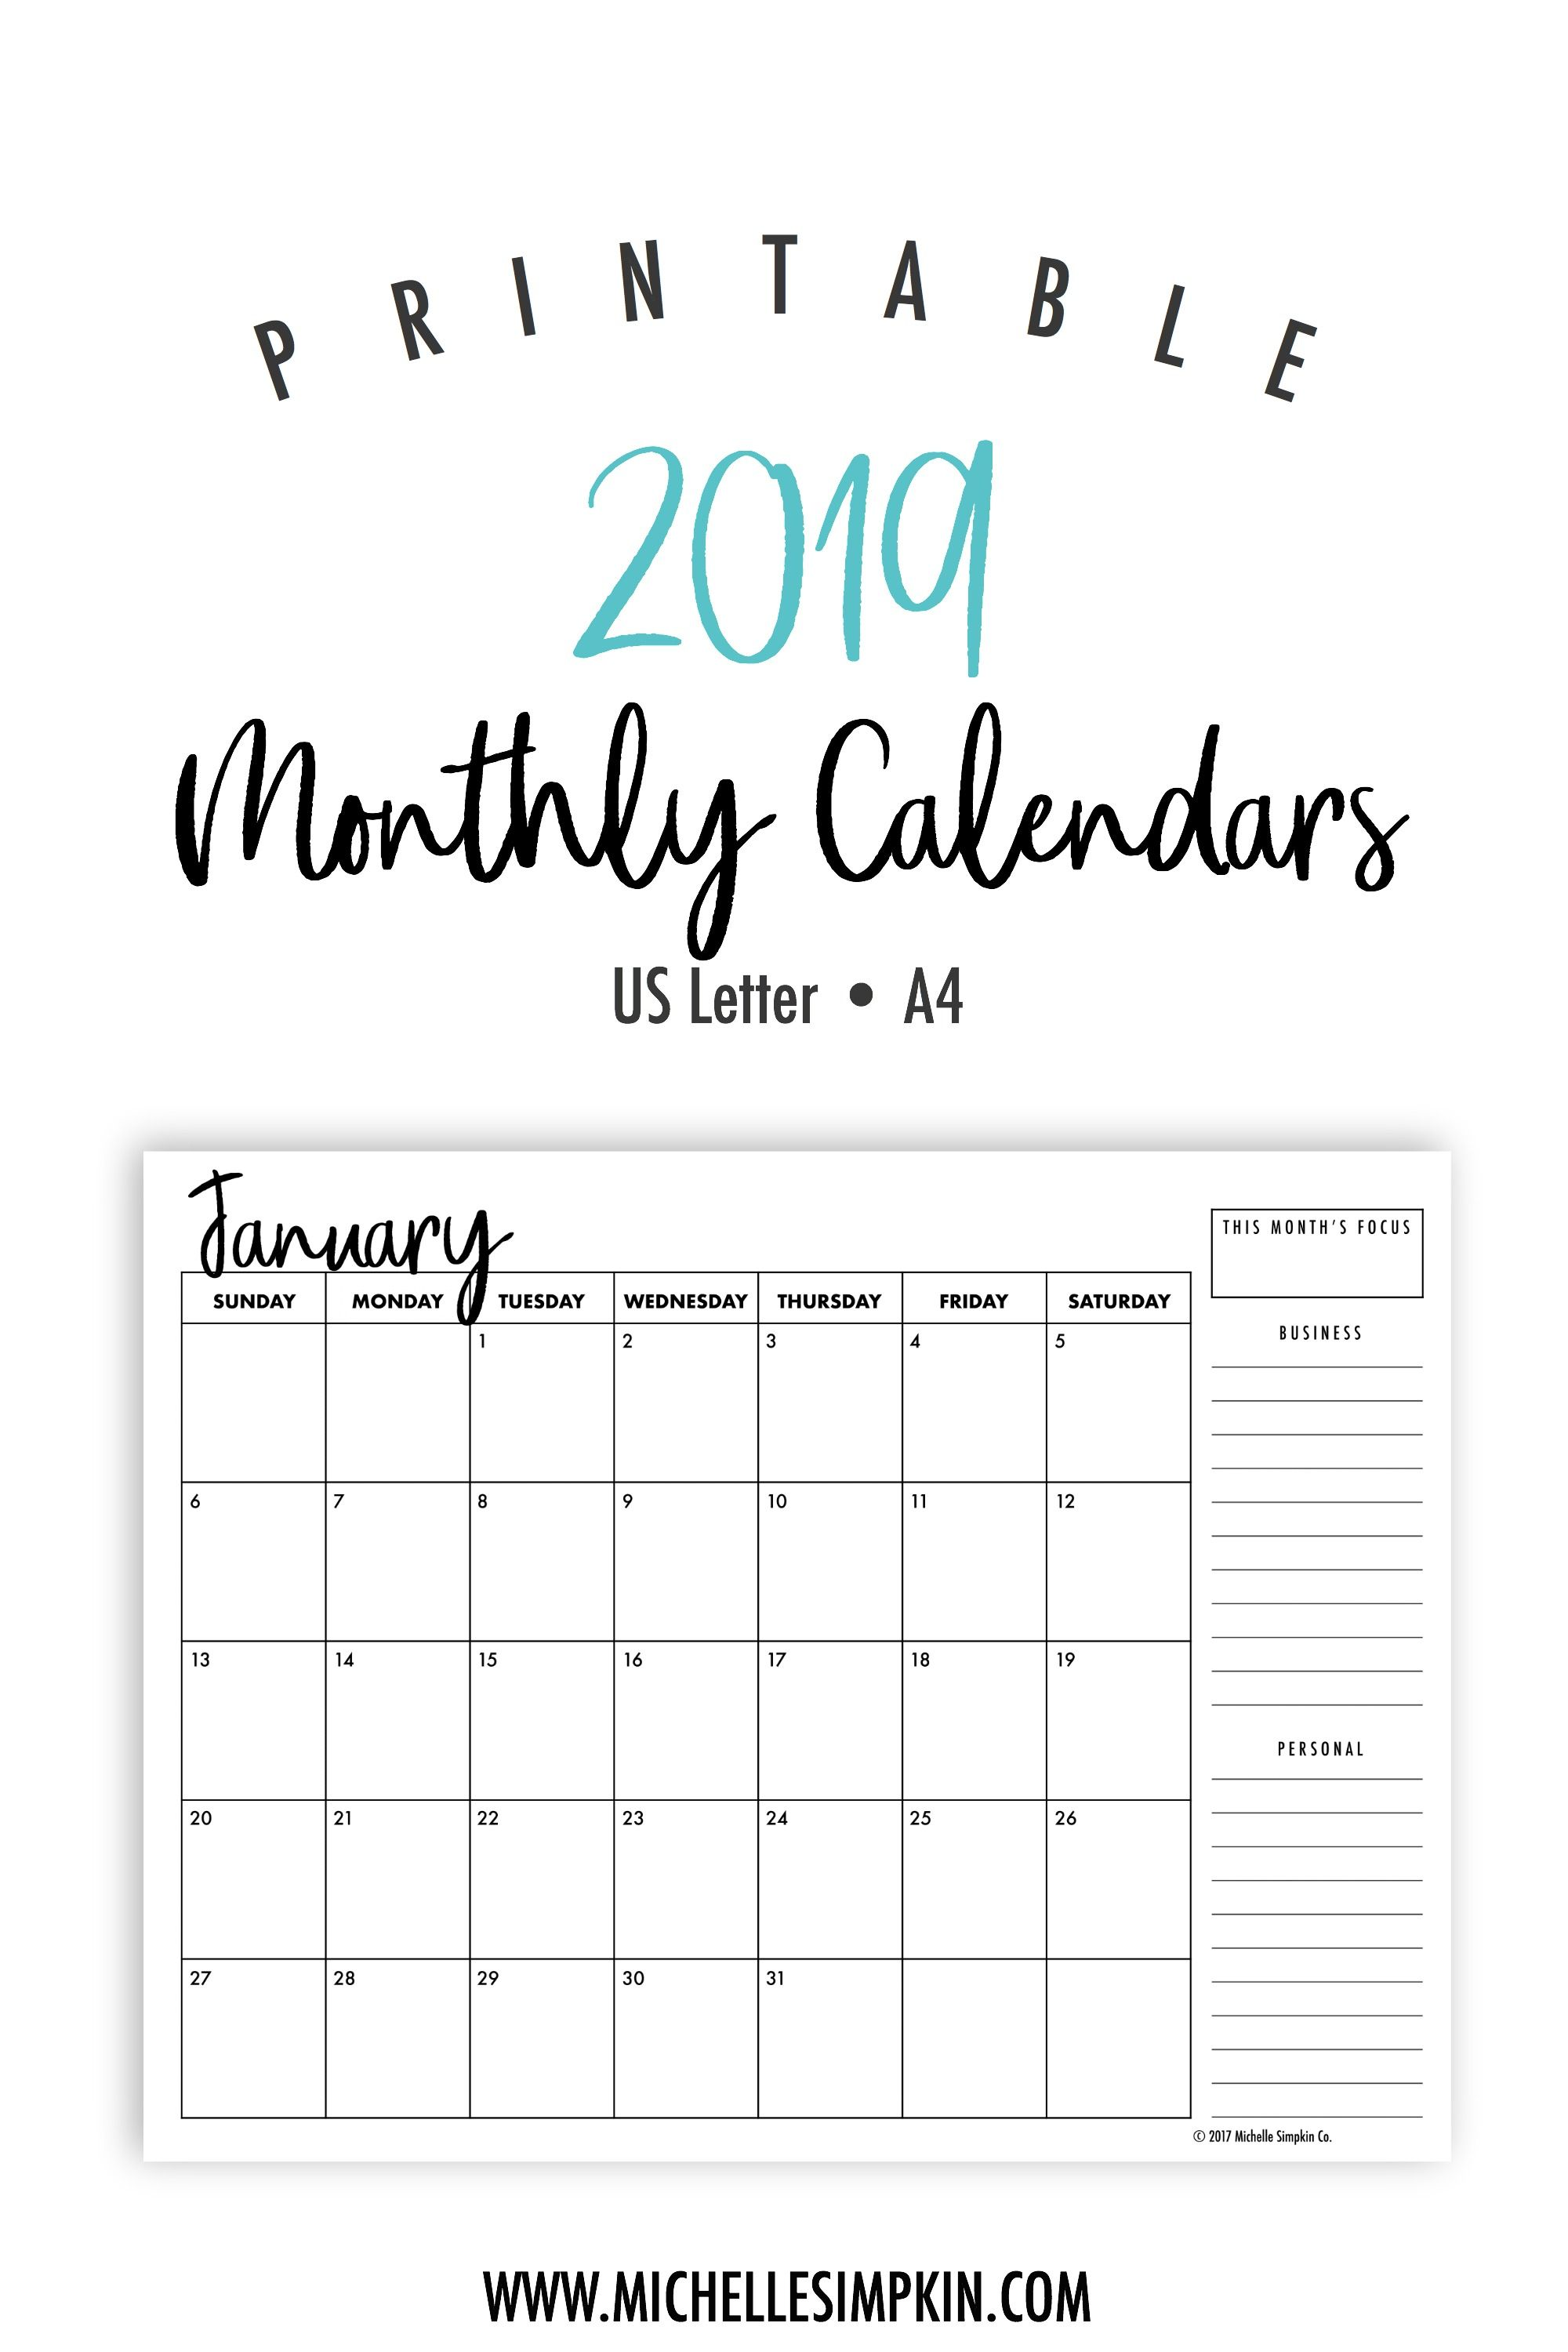 bd771099f4464 2019 Printable Calendars - Plan out next year with these ink-friendly